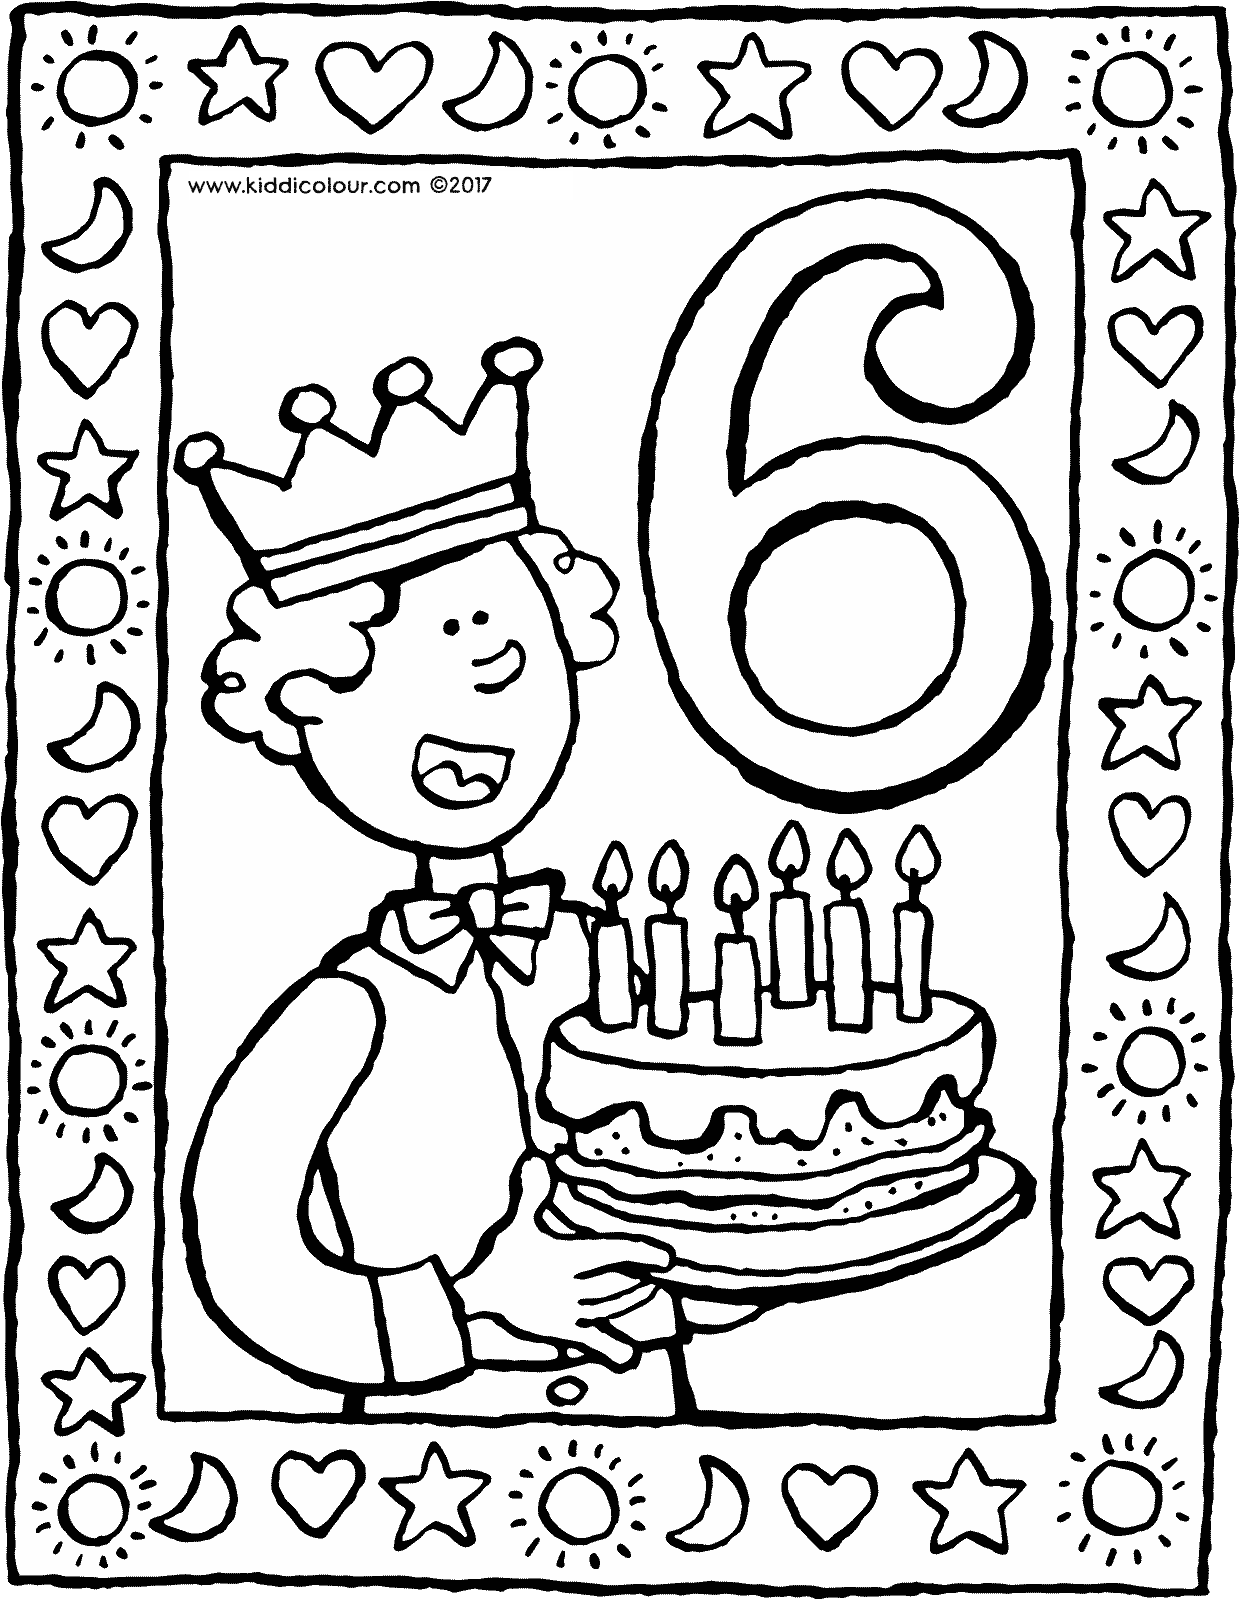 coloring sheets for 6 year olds coloring pages for 6 year olds free download on clipartmag for year olds sheets 6 coloring